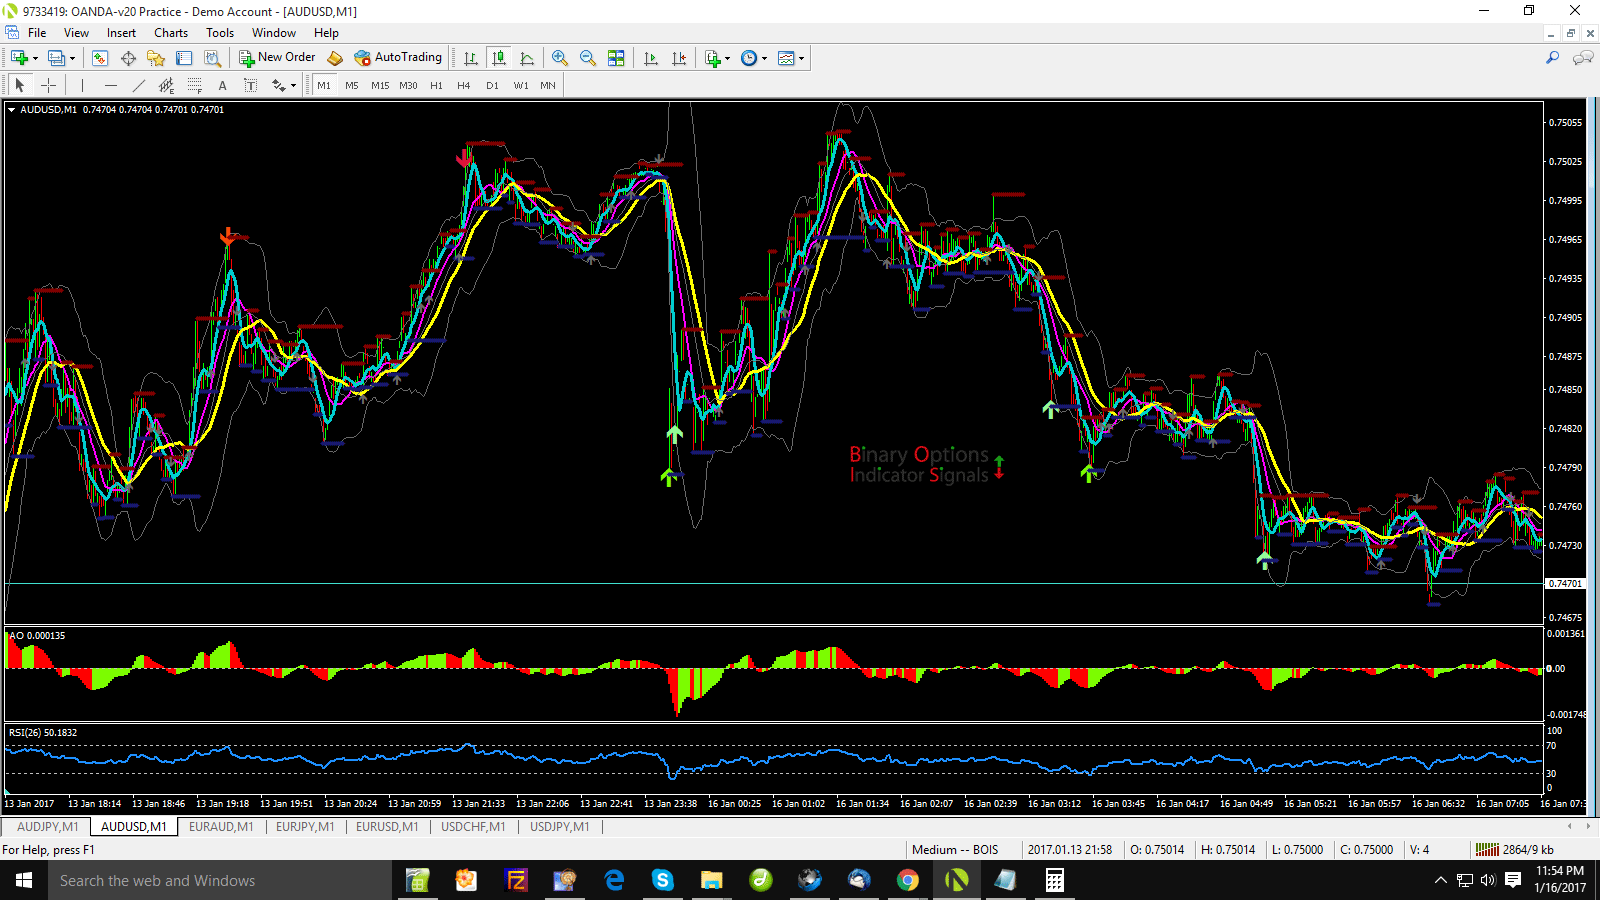 Training on binary options trading